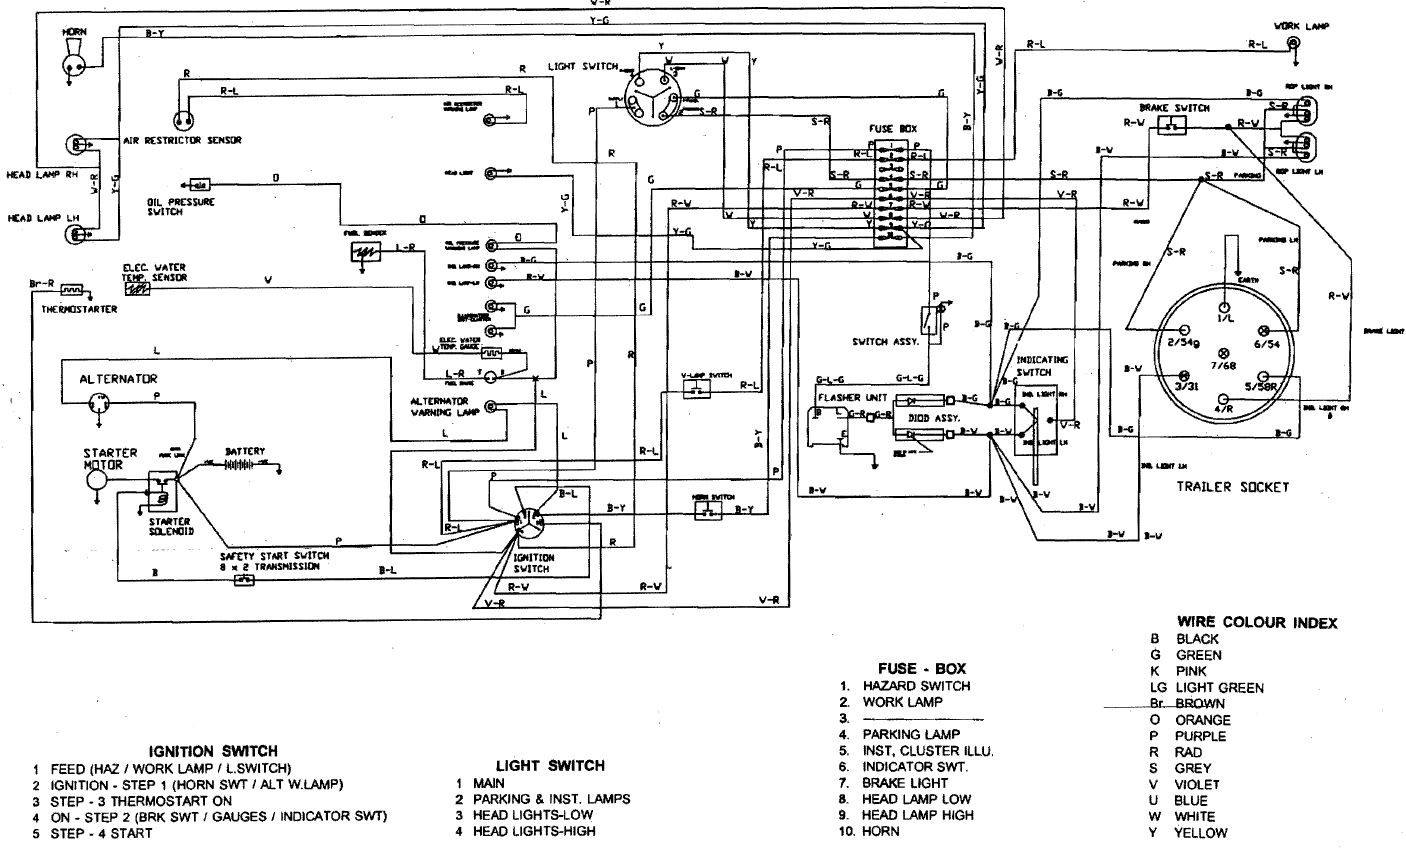 kubota gr2100 wiring diagram example electrical wiring diagram u2022 rh cranejapan co Kubota GR2100 Problems Kubota GR2100 Problems